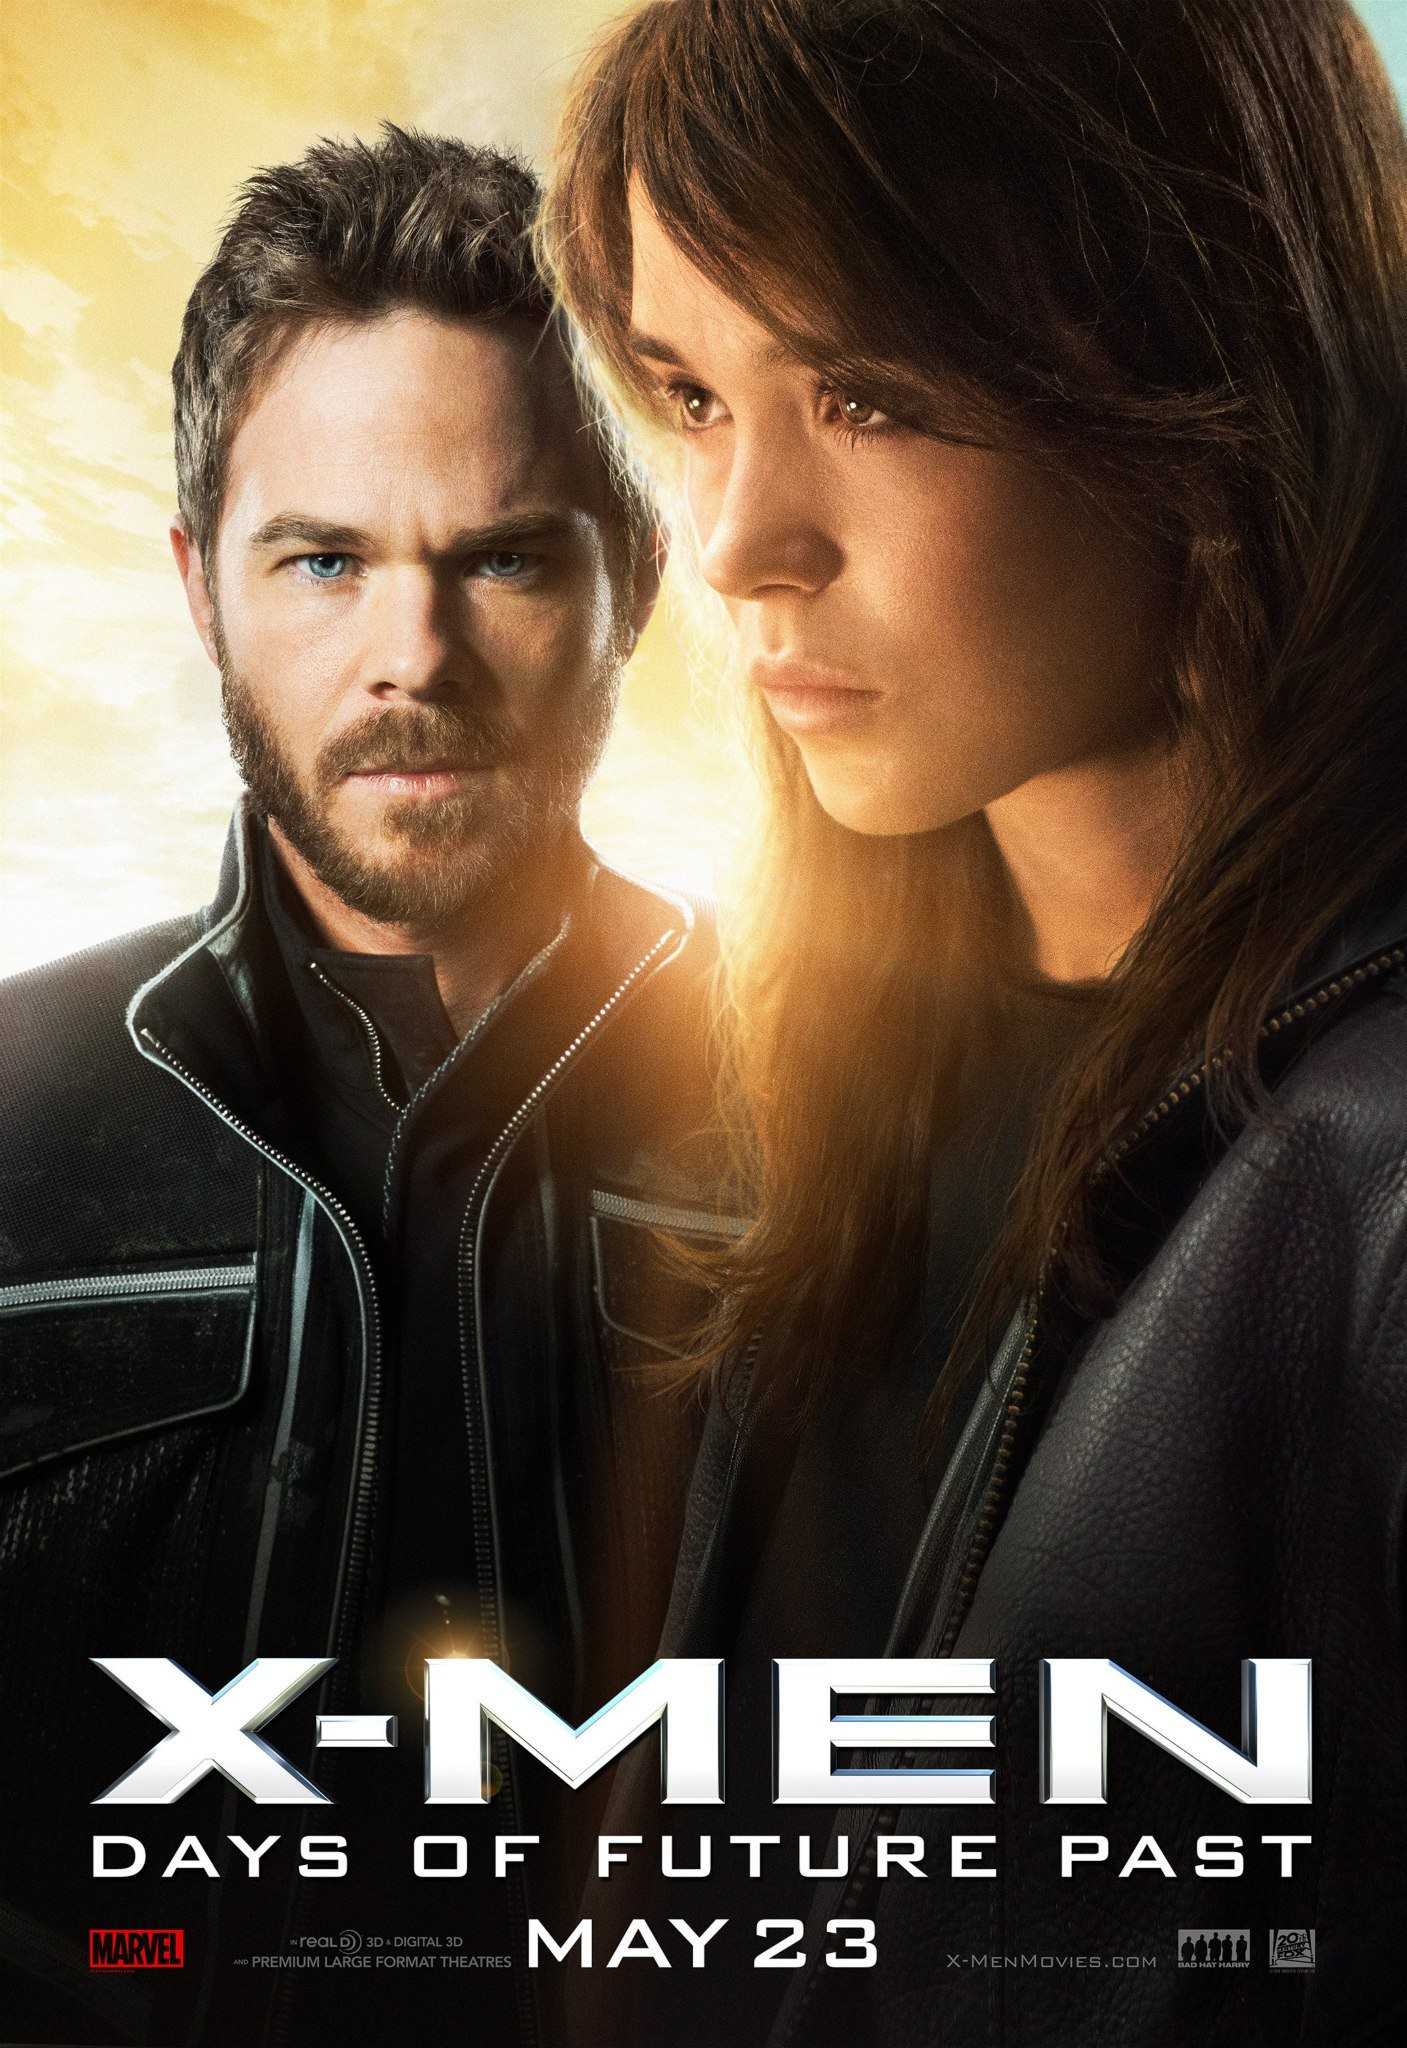 X-Men Days of Future Past-Official Poster Banner PROMO XXLG-08ABRIL2014-01